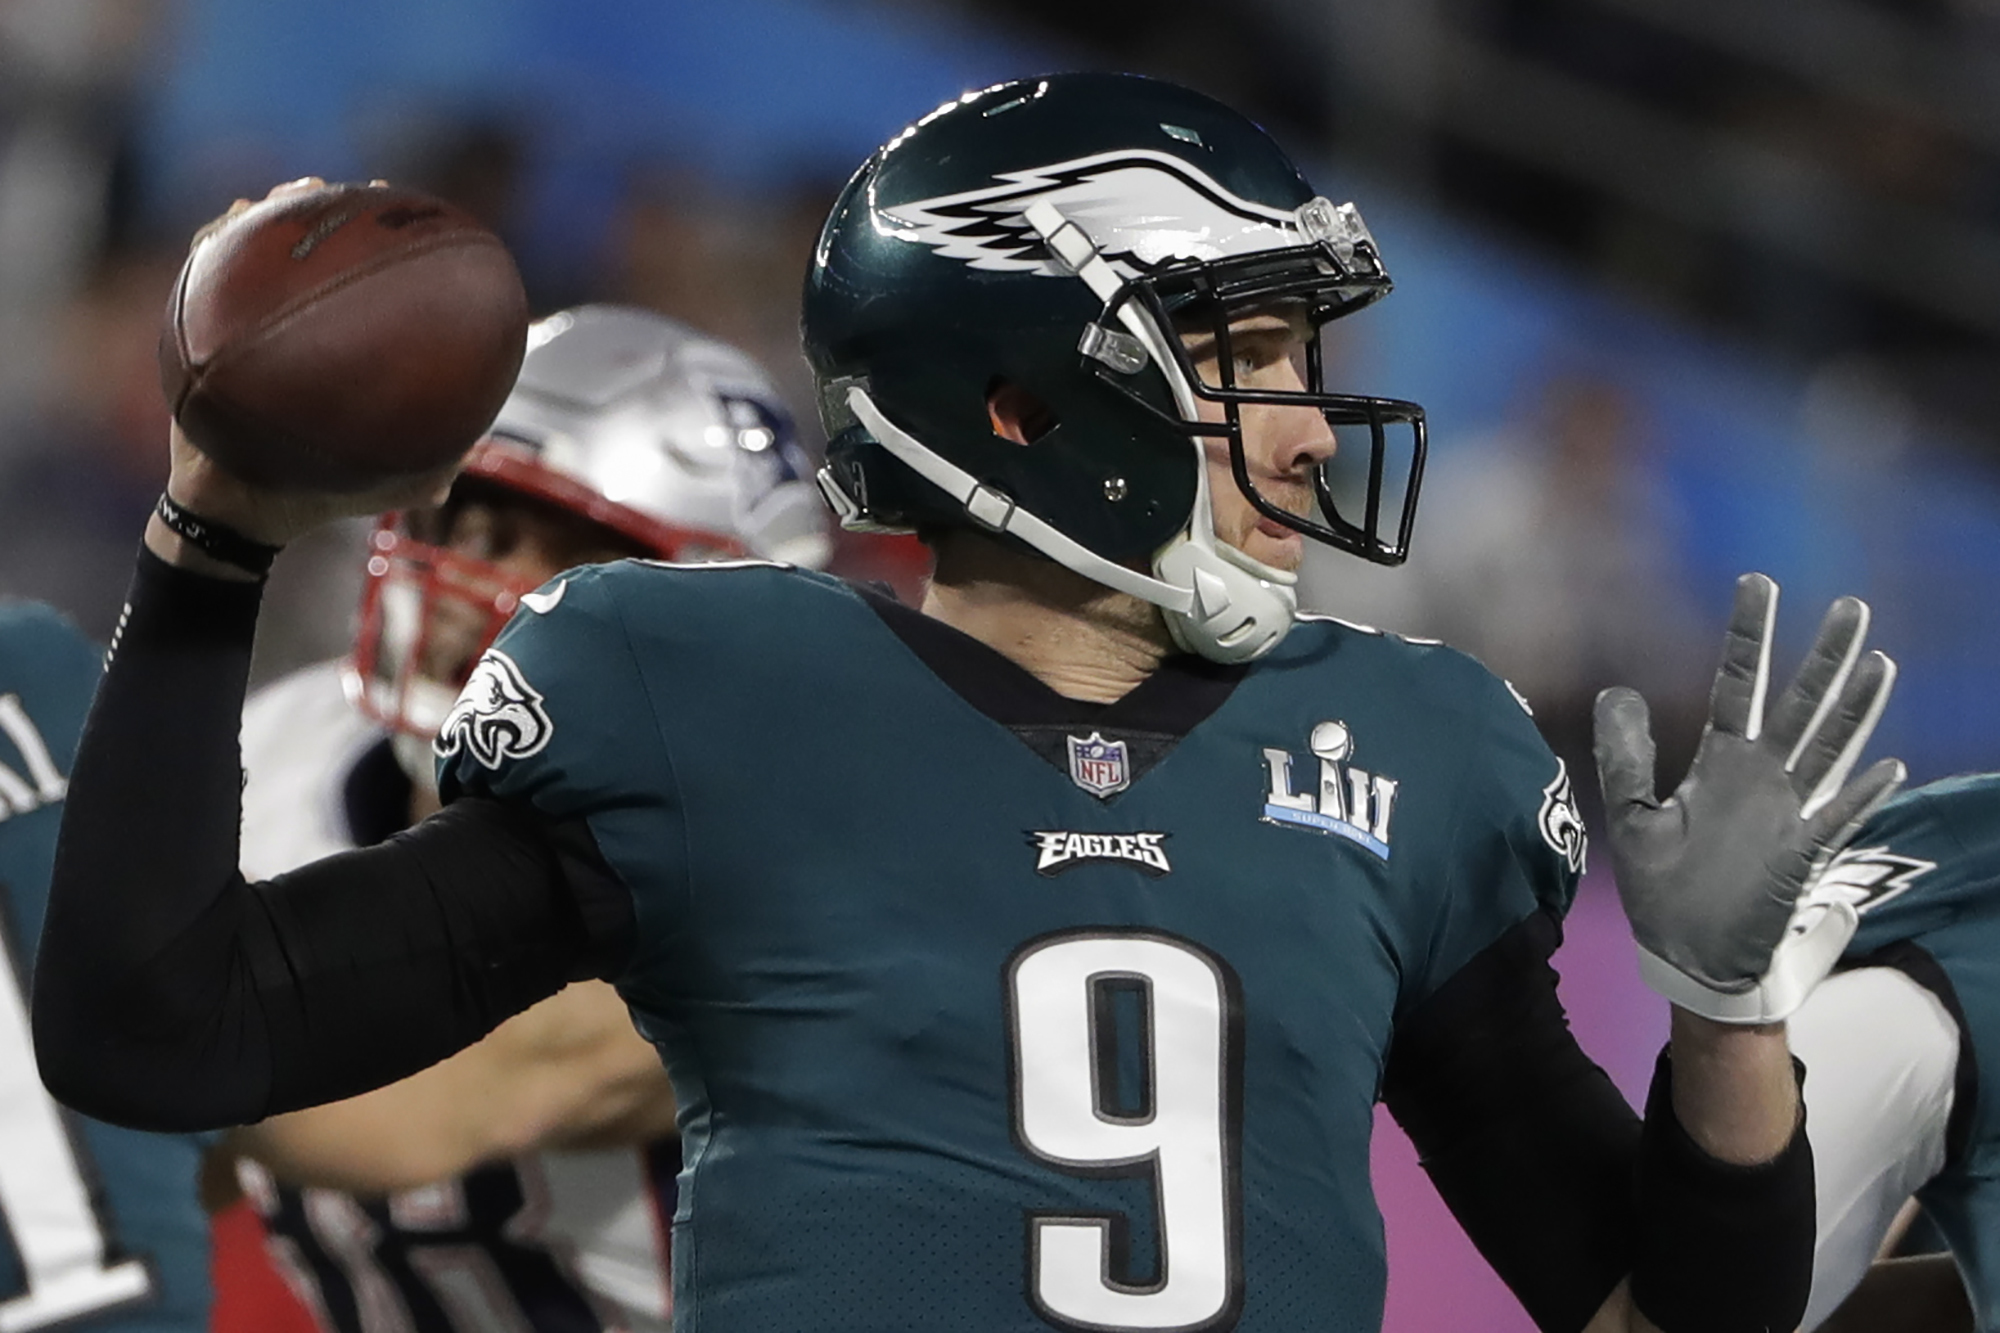 "<div class=""meta image-caption""><div class=""origin-logo origin-image ap""><span>AP</span></div><span class=""caption-text"">Philadelphia Eagles quarterback Nick Foles (9,) throws against the New England Patriots during the first half of the NFL Super Bowl 52 football game, Sunday, Feb. 4, 2018. (AP Photo/Chris O'Meara)</span></div>"